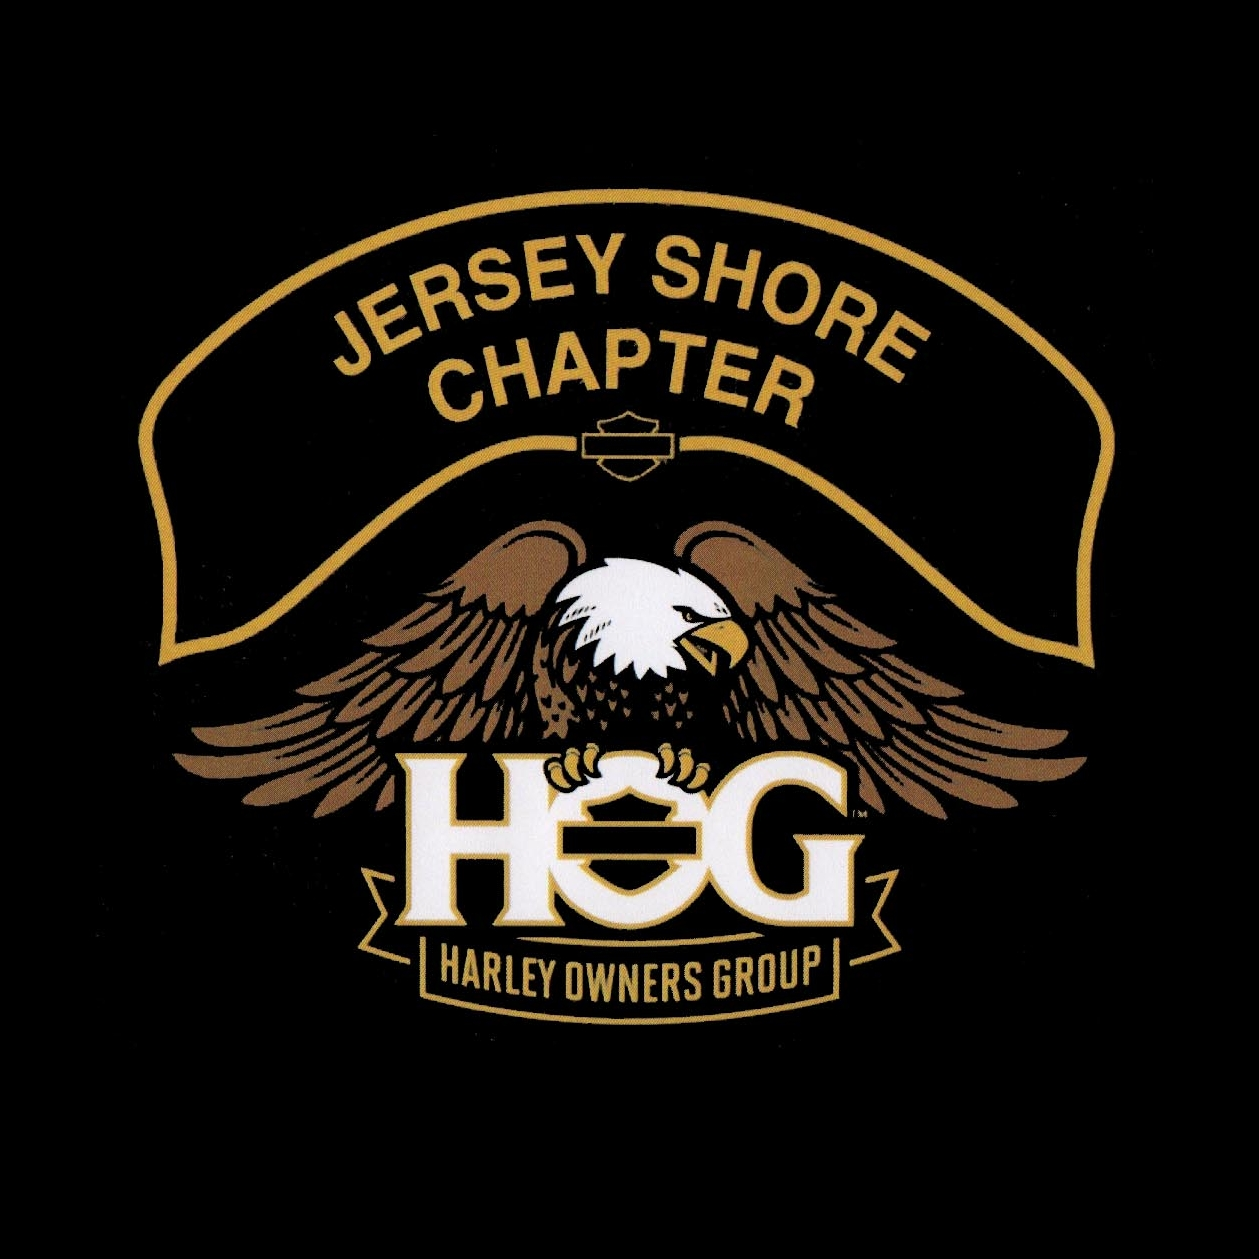 2.Join the Jersey Shore ChapterOnce you're a HOG member, you can join our Jersey Shore Chapter by completing our membership form and bringing it to Shoreline Harley Davidson or to our next general membership meeting listed on our events page. Be sure to bring you National HOG member ID card and the annual dues of $20. -